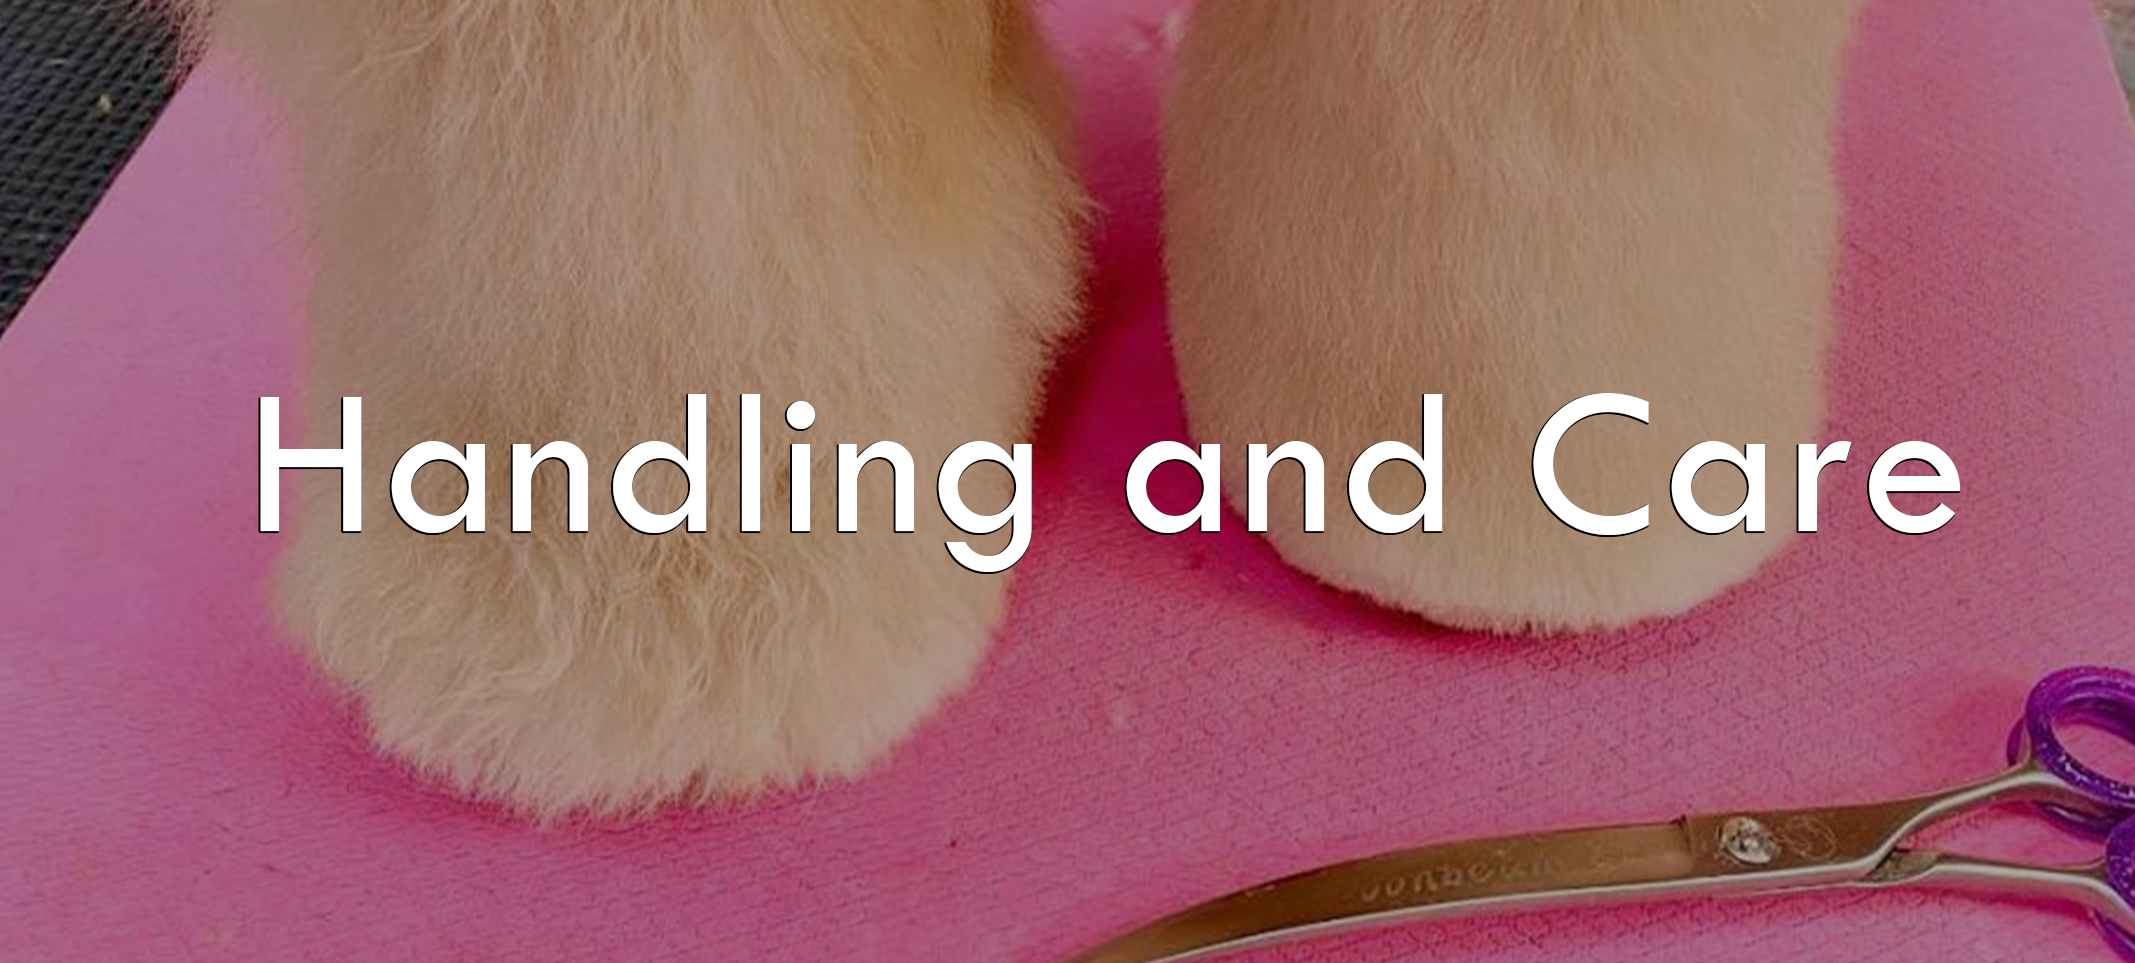 Handling and Caring for Your PawMat